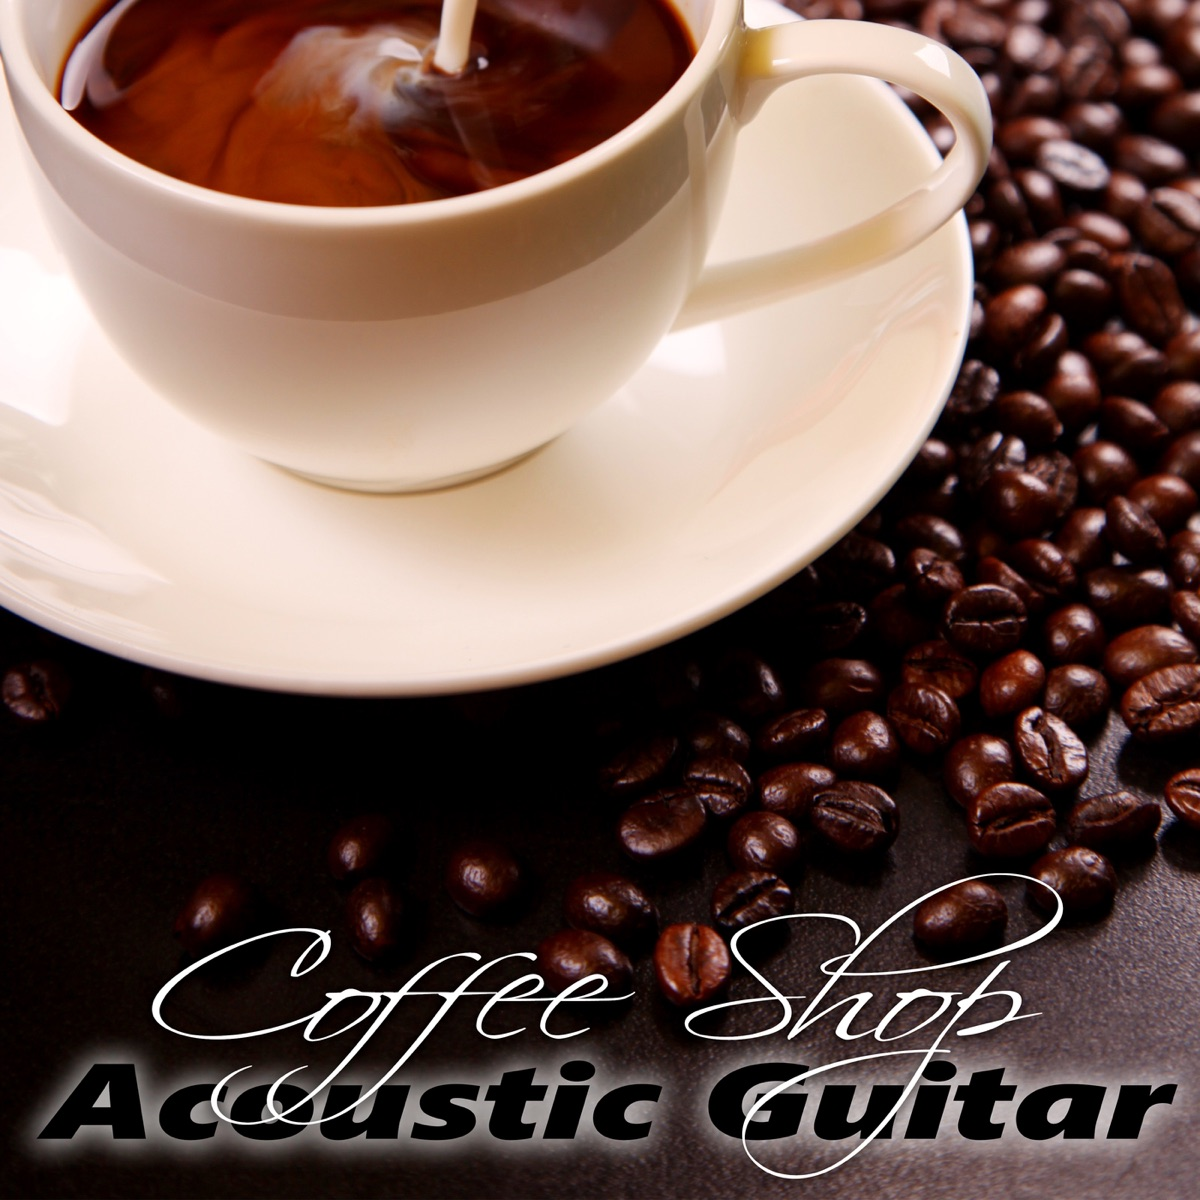 Coffee Shop - Relaxing Tracks in the Acoustic Guitar for Chill Zone